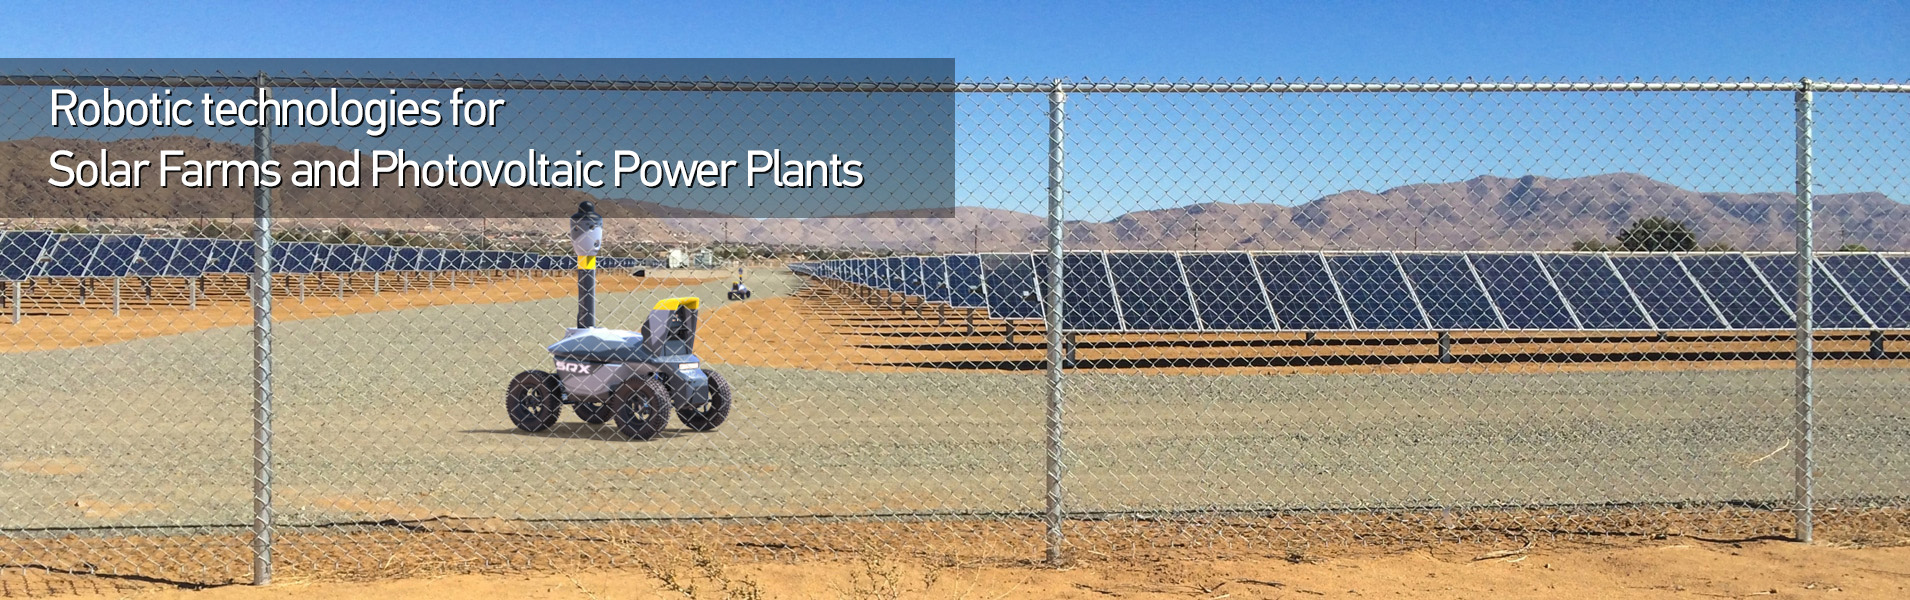 Robotic technologies for Solar Farms and Photovoltaic Power Plants